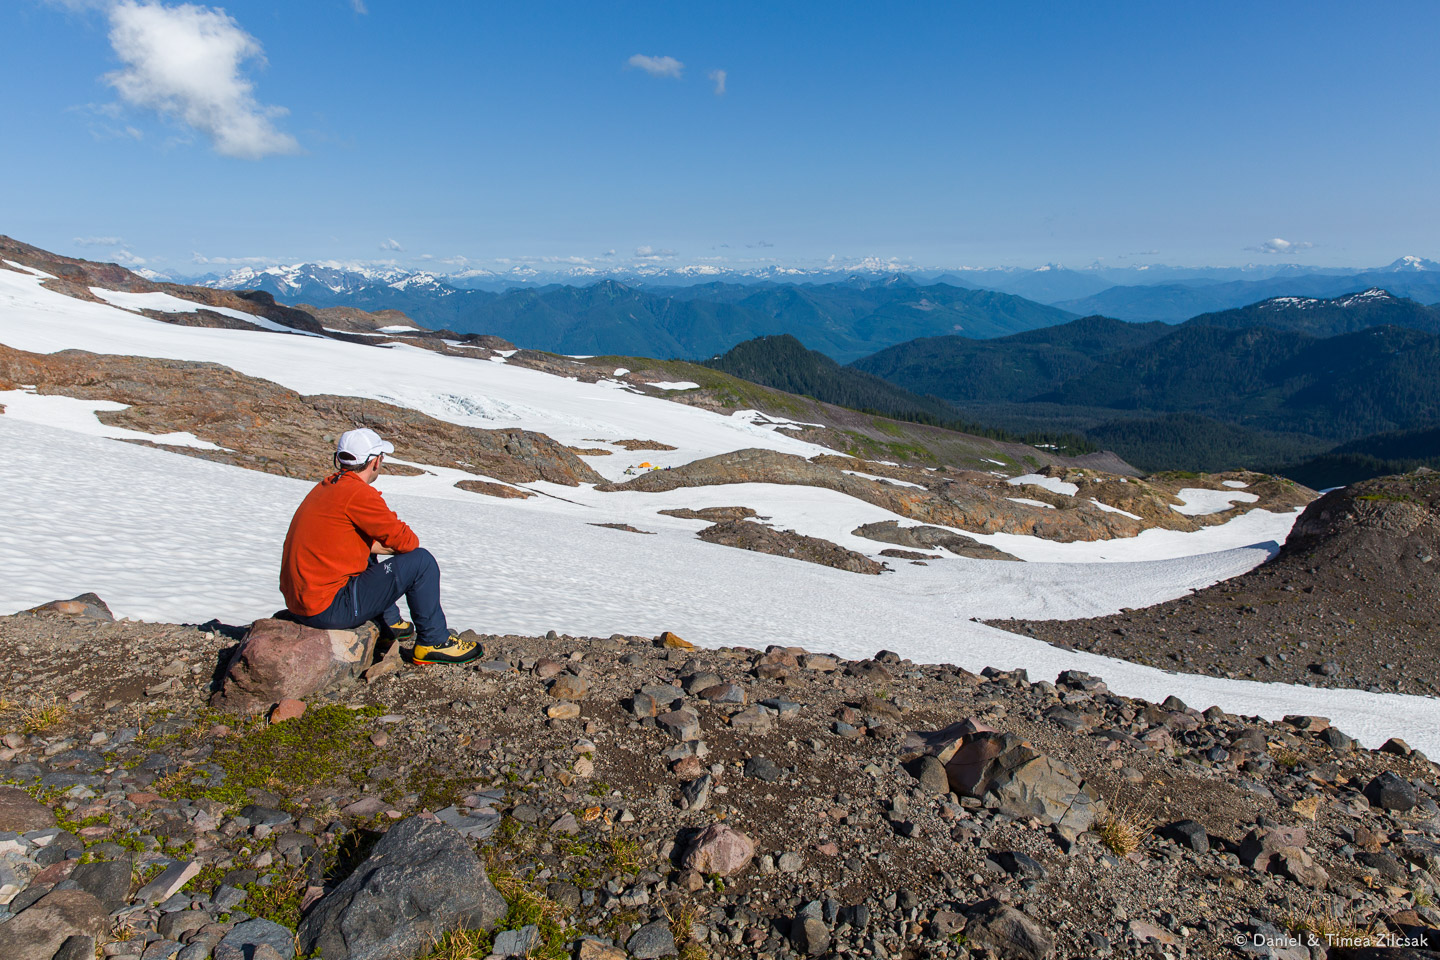 Exploring around base camp, Mount Baker: our camp on the other side of the snow field